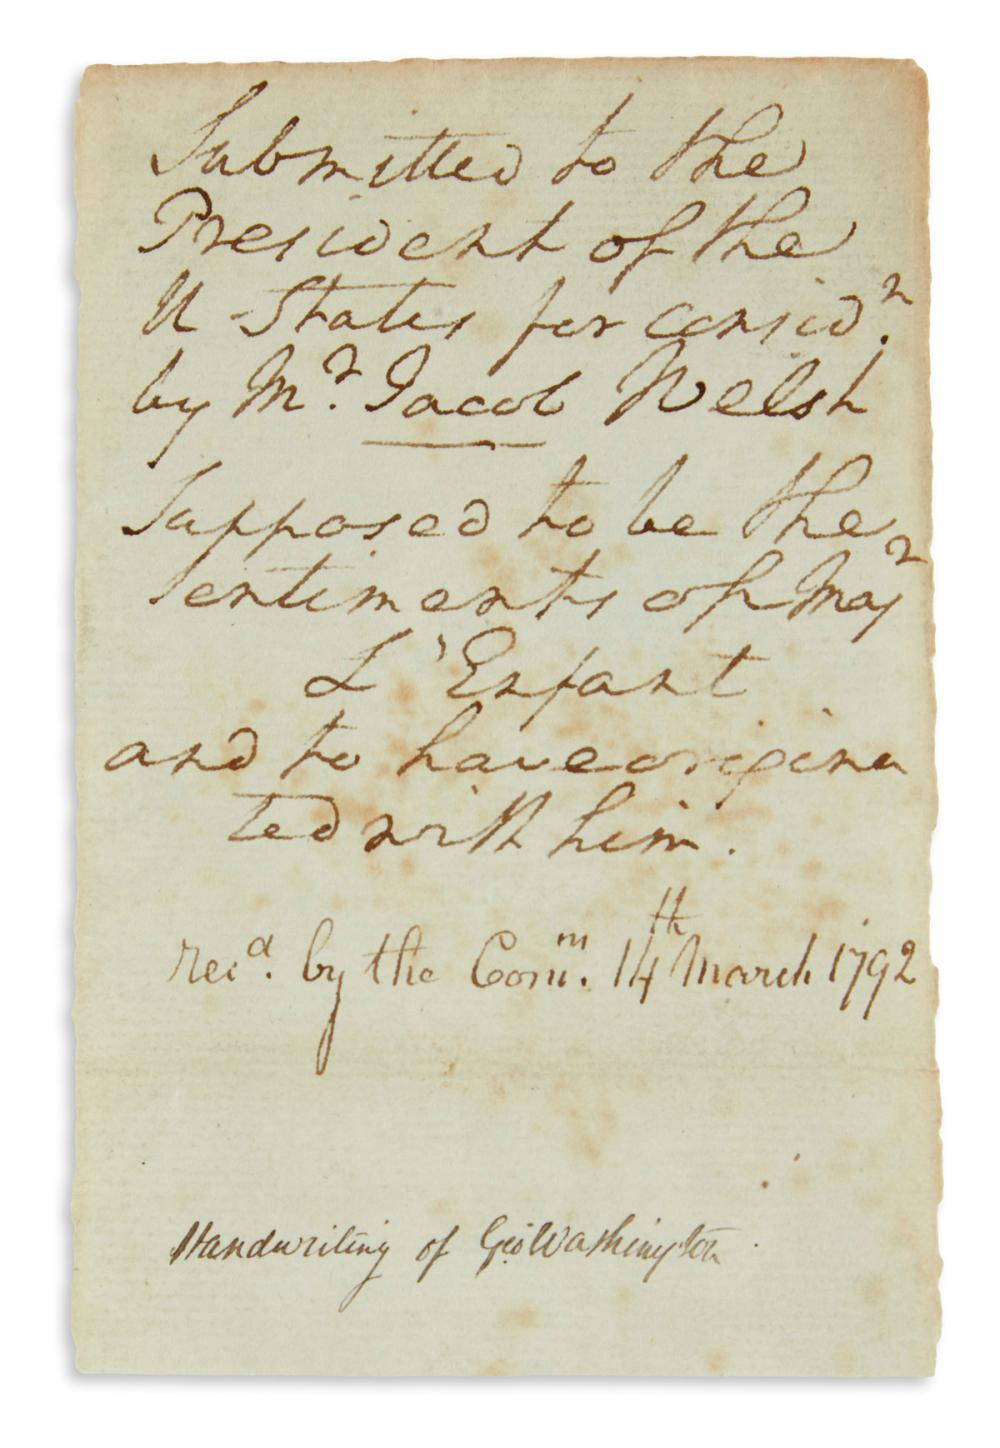 WASHINGTON, GEORGE. Autograph Manuscript, unsigned, 9 lines, likely an endorsement on a now absent communication: